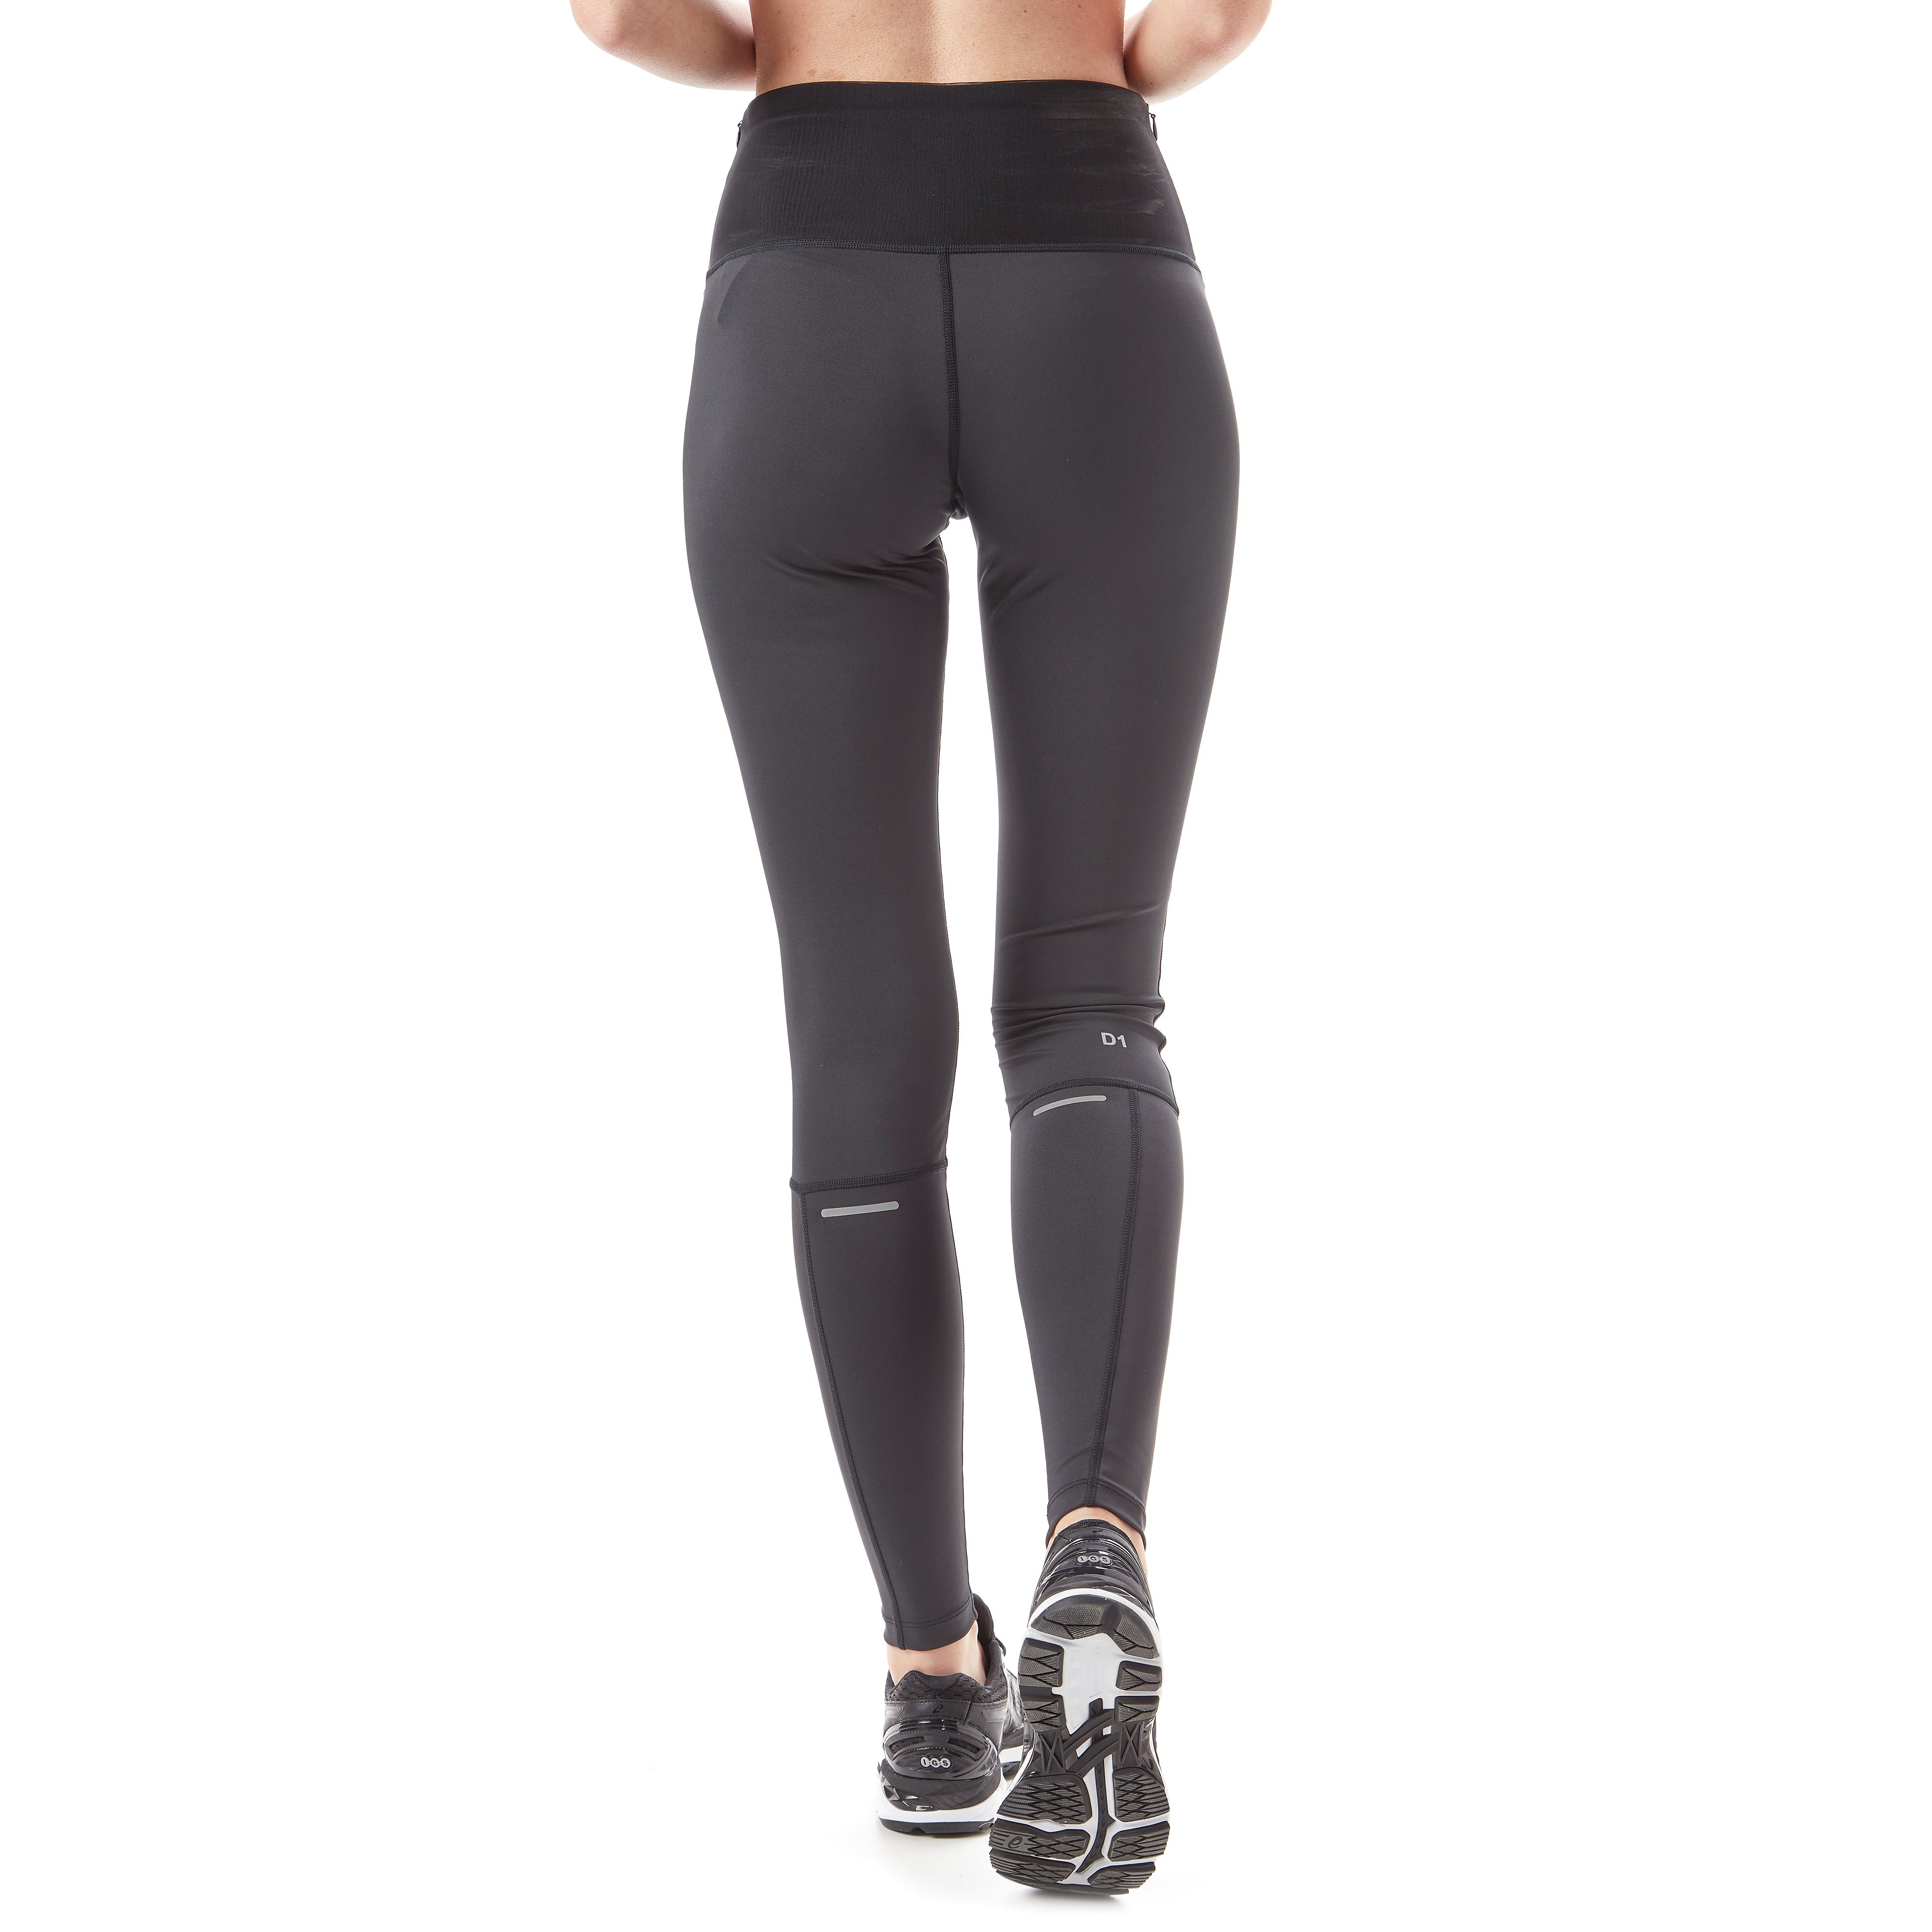 ASICS High-Waisted Women's Training Tights